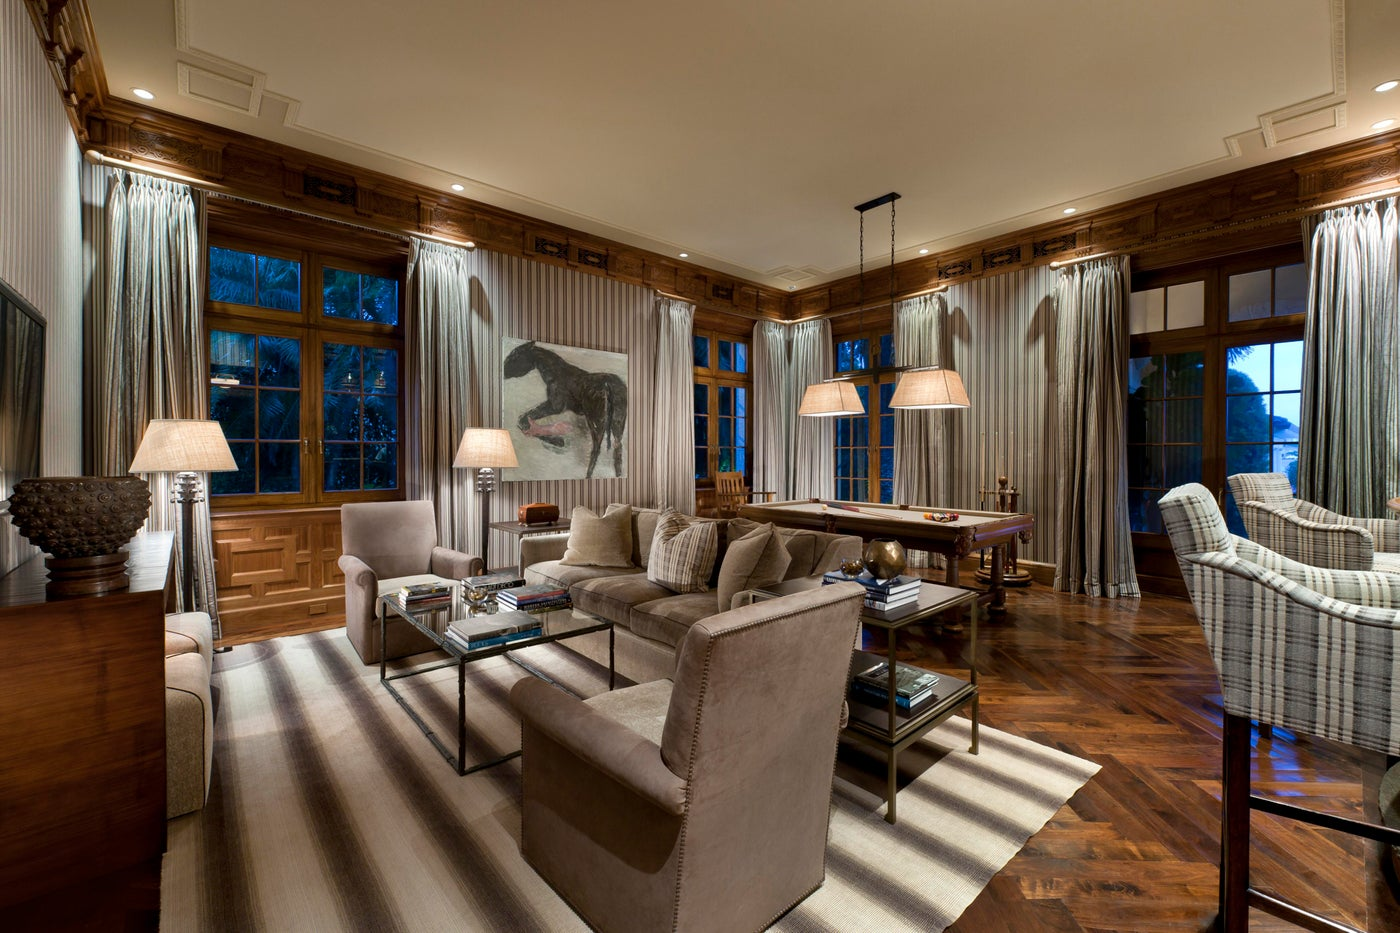 Interior Architecture of Miami Indian Creek Home featured in Architectural Digest